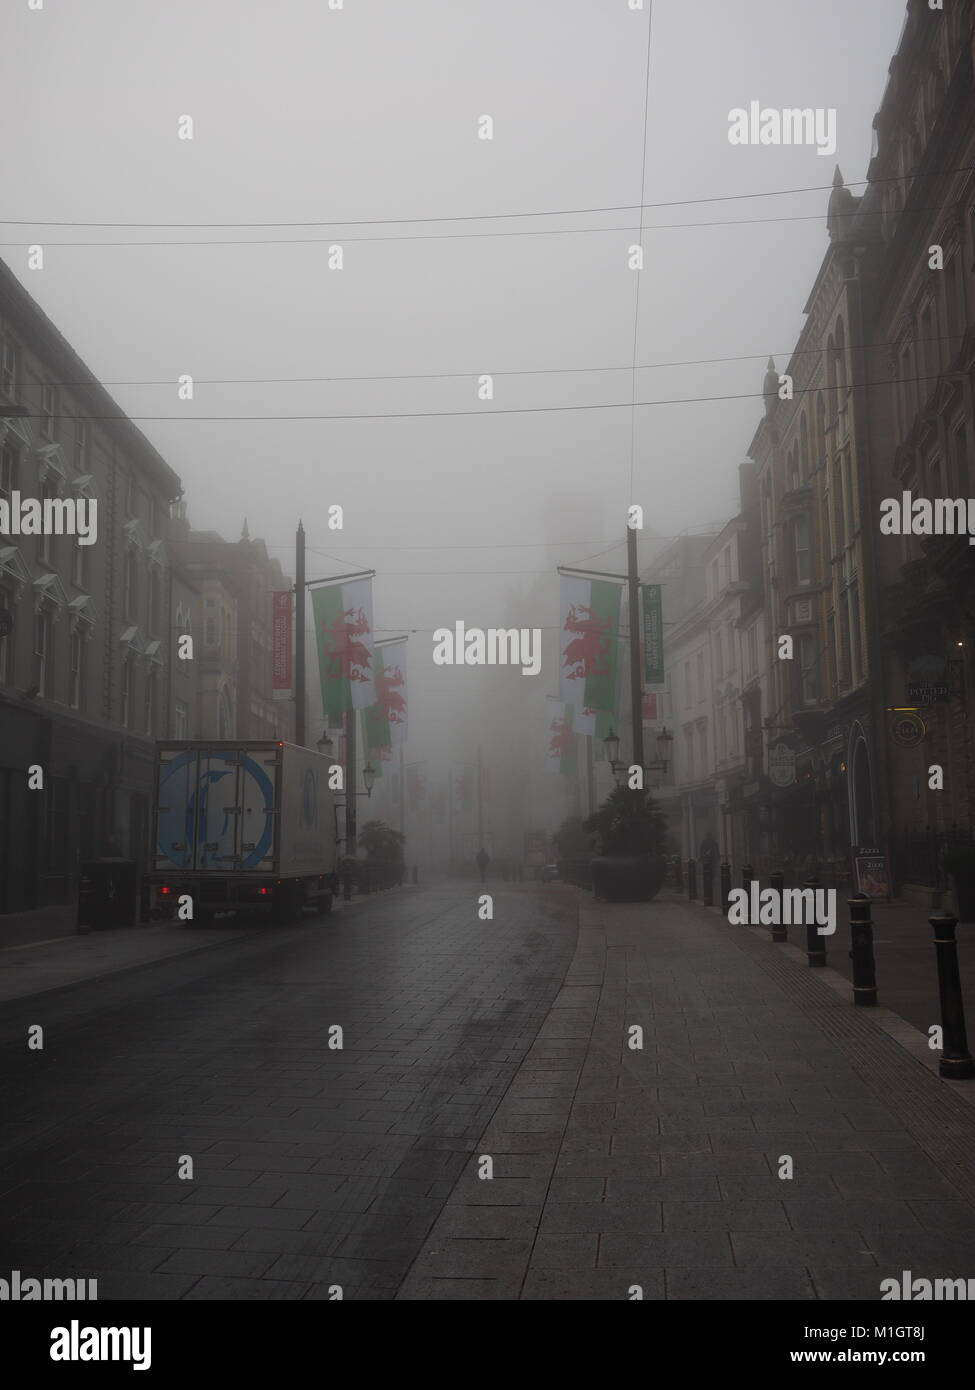 Commuters wend their way through the early morning fog on Cardiff's Mary Street, Wales - Stock Image